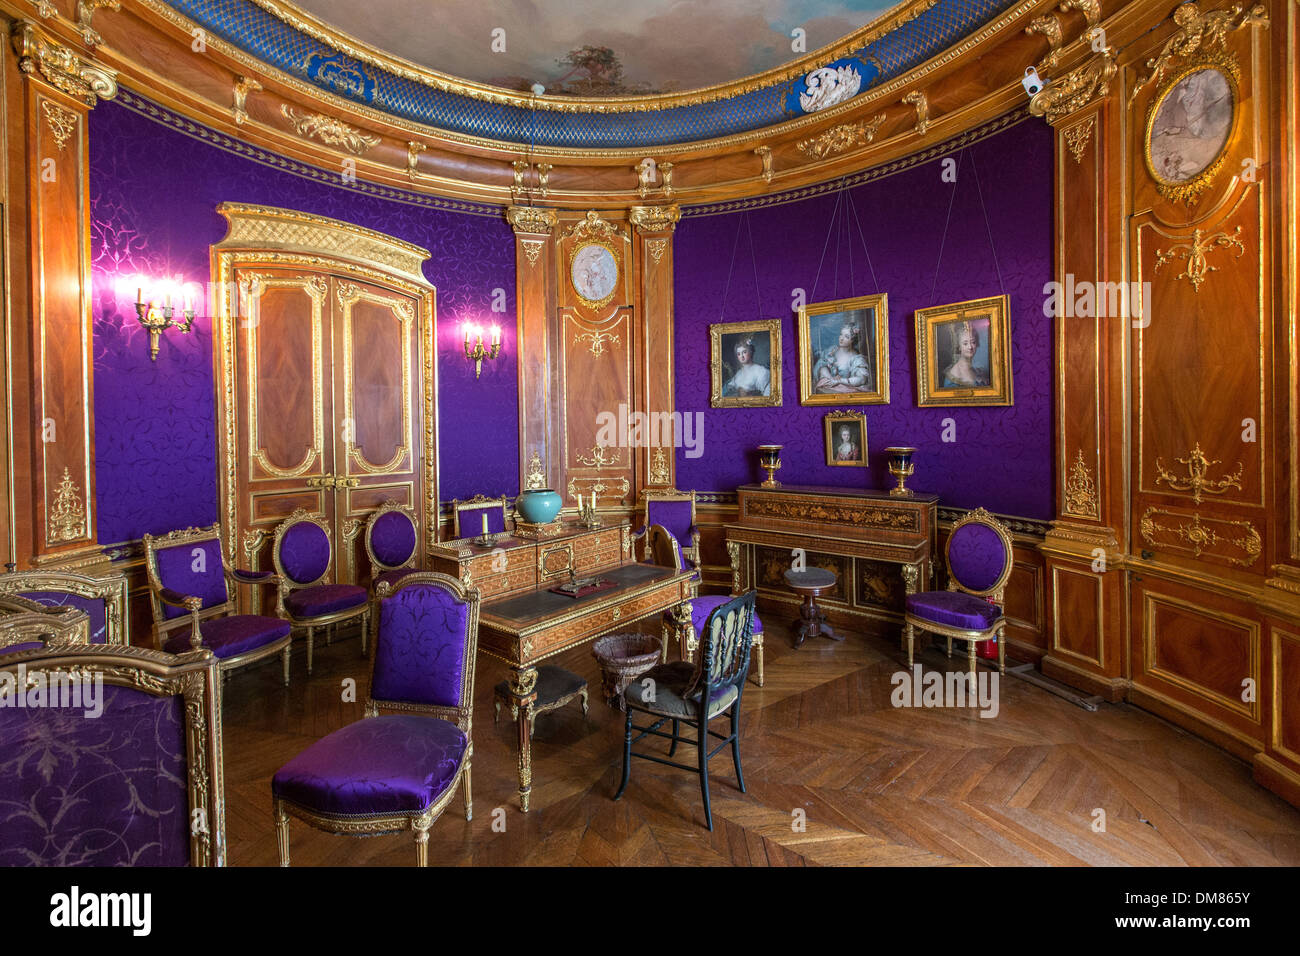 BOUDOIR OF THE DUCHESS D'AUMALE (1822-1869) OR VIOLET SALON, SMALL APARTMENTS CREATED IN 1845 AND 1846 BY THE PAINTER AND DECORATOR EUGENE LAMI, CHATEAU DE CHANTILLY, OISE (60), FRANCE - Stock Image